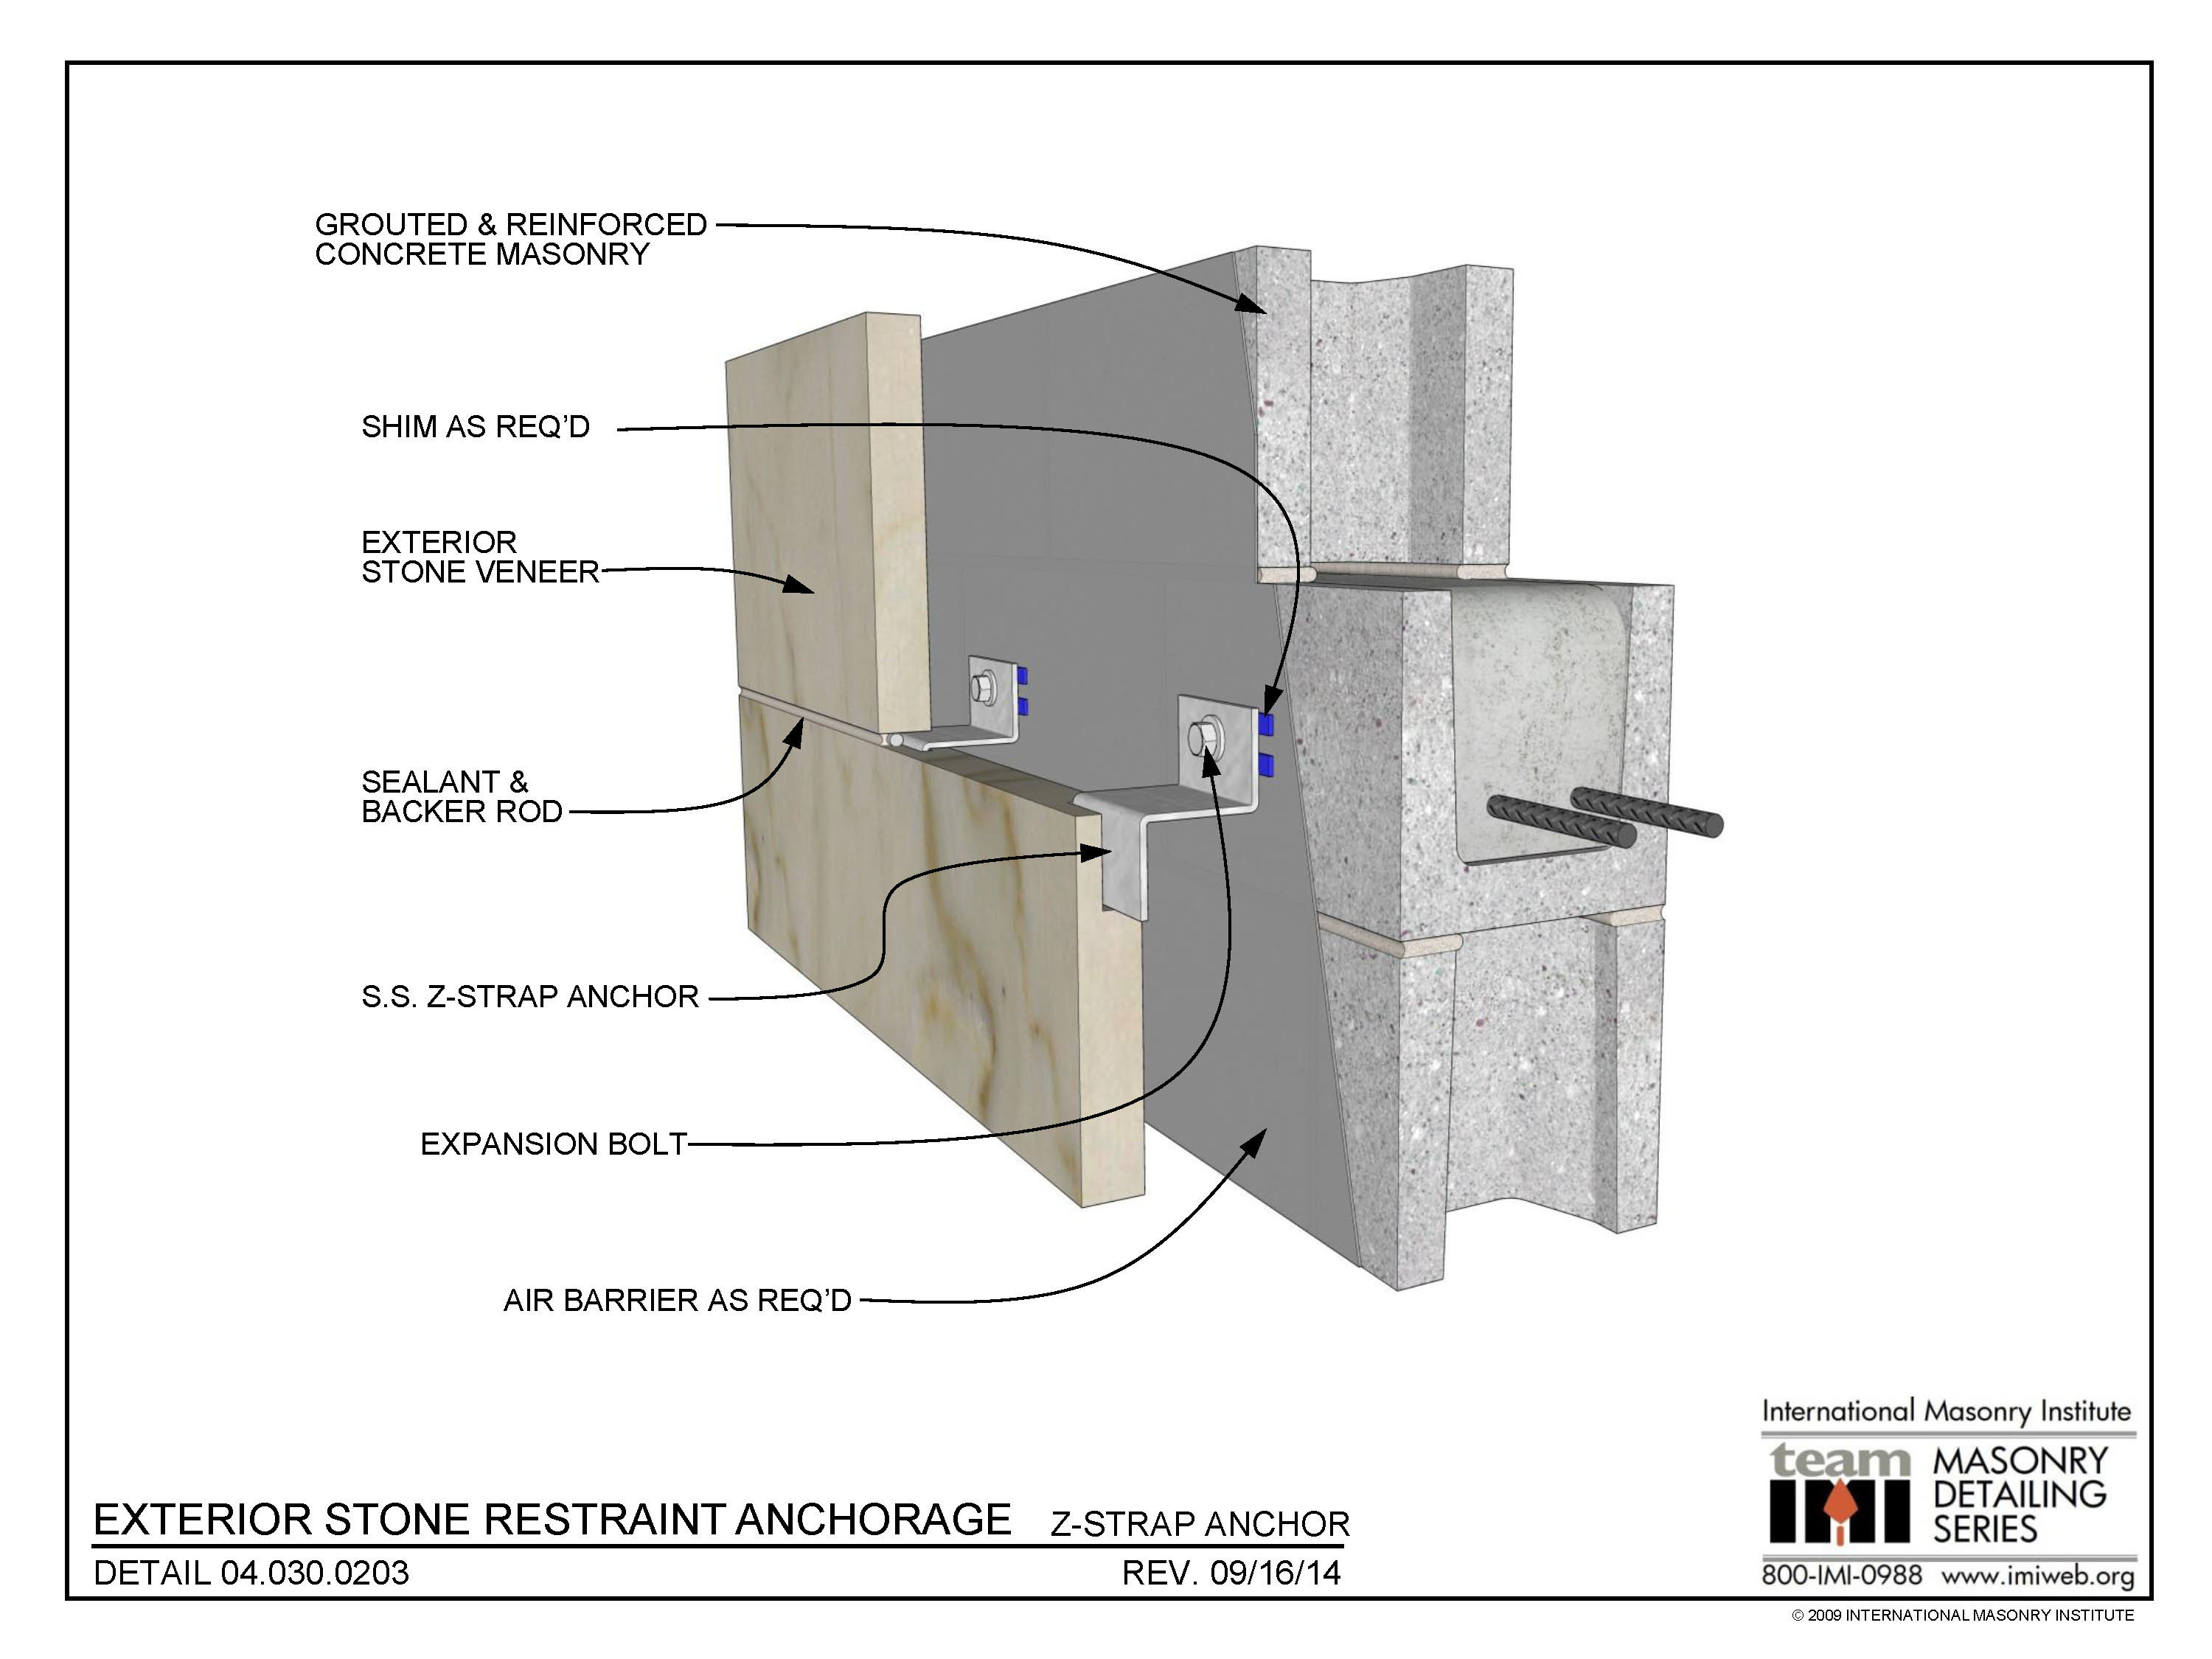 04 030 0203 Exterior Stone Restraint Anchorage